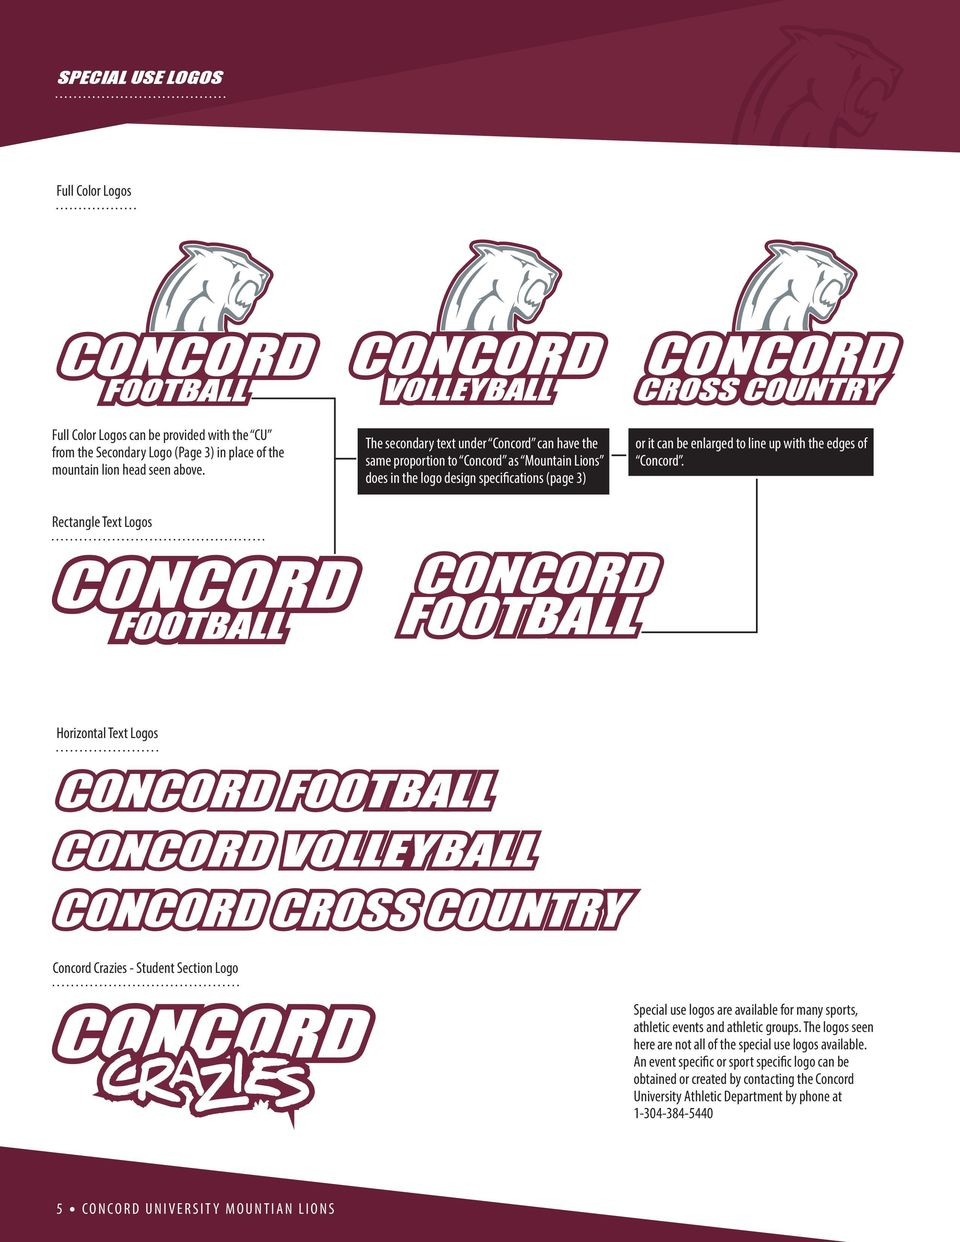 Concord. Rectangle Text Logos Horizontal Text Logos Concord Crazies - Student Section Logo Special use logos are available for many sports, athletic events and athletic groups.